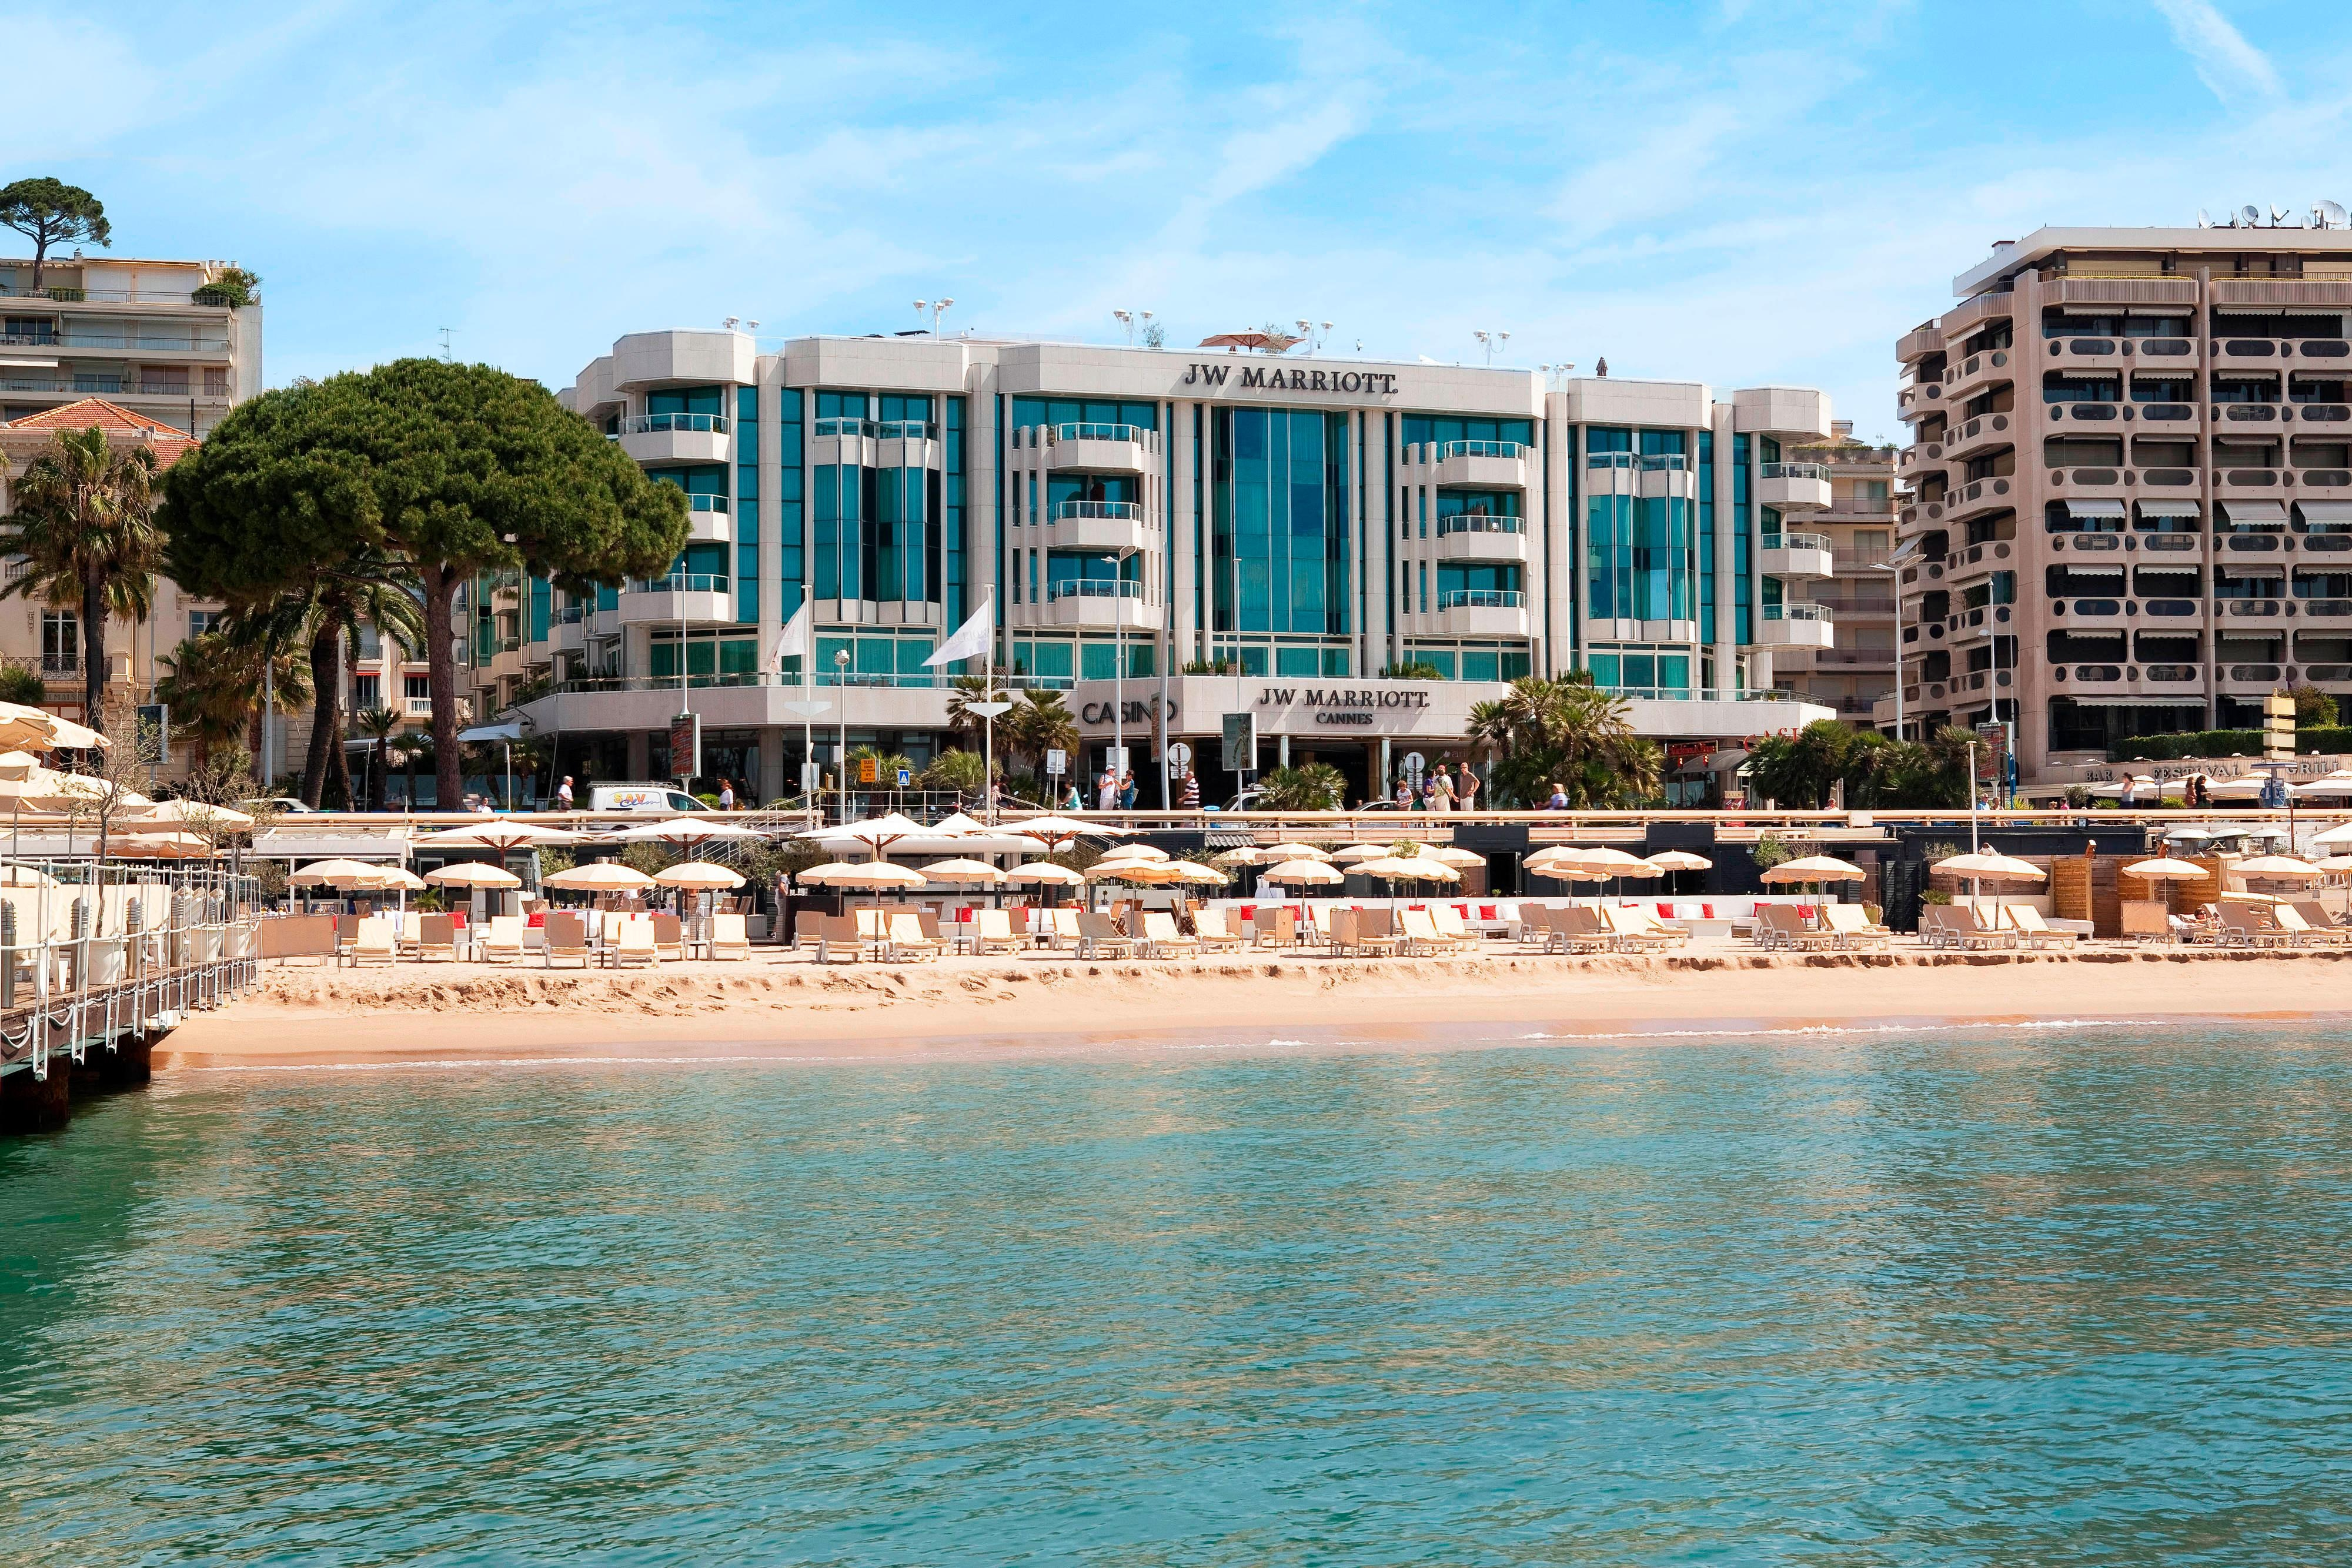 Beachfront Cannes 5 star hotel